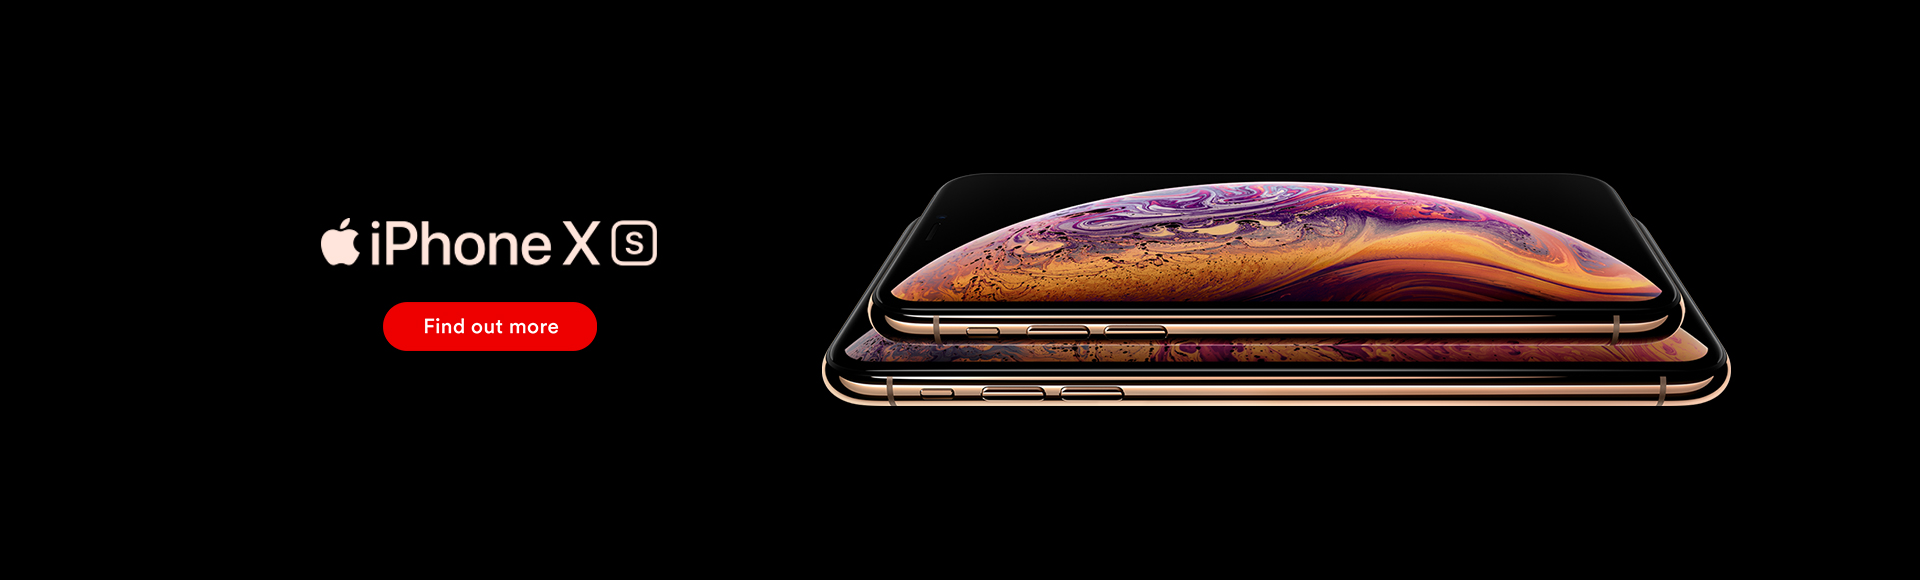 iPhone Xs - Find out more